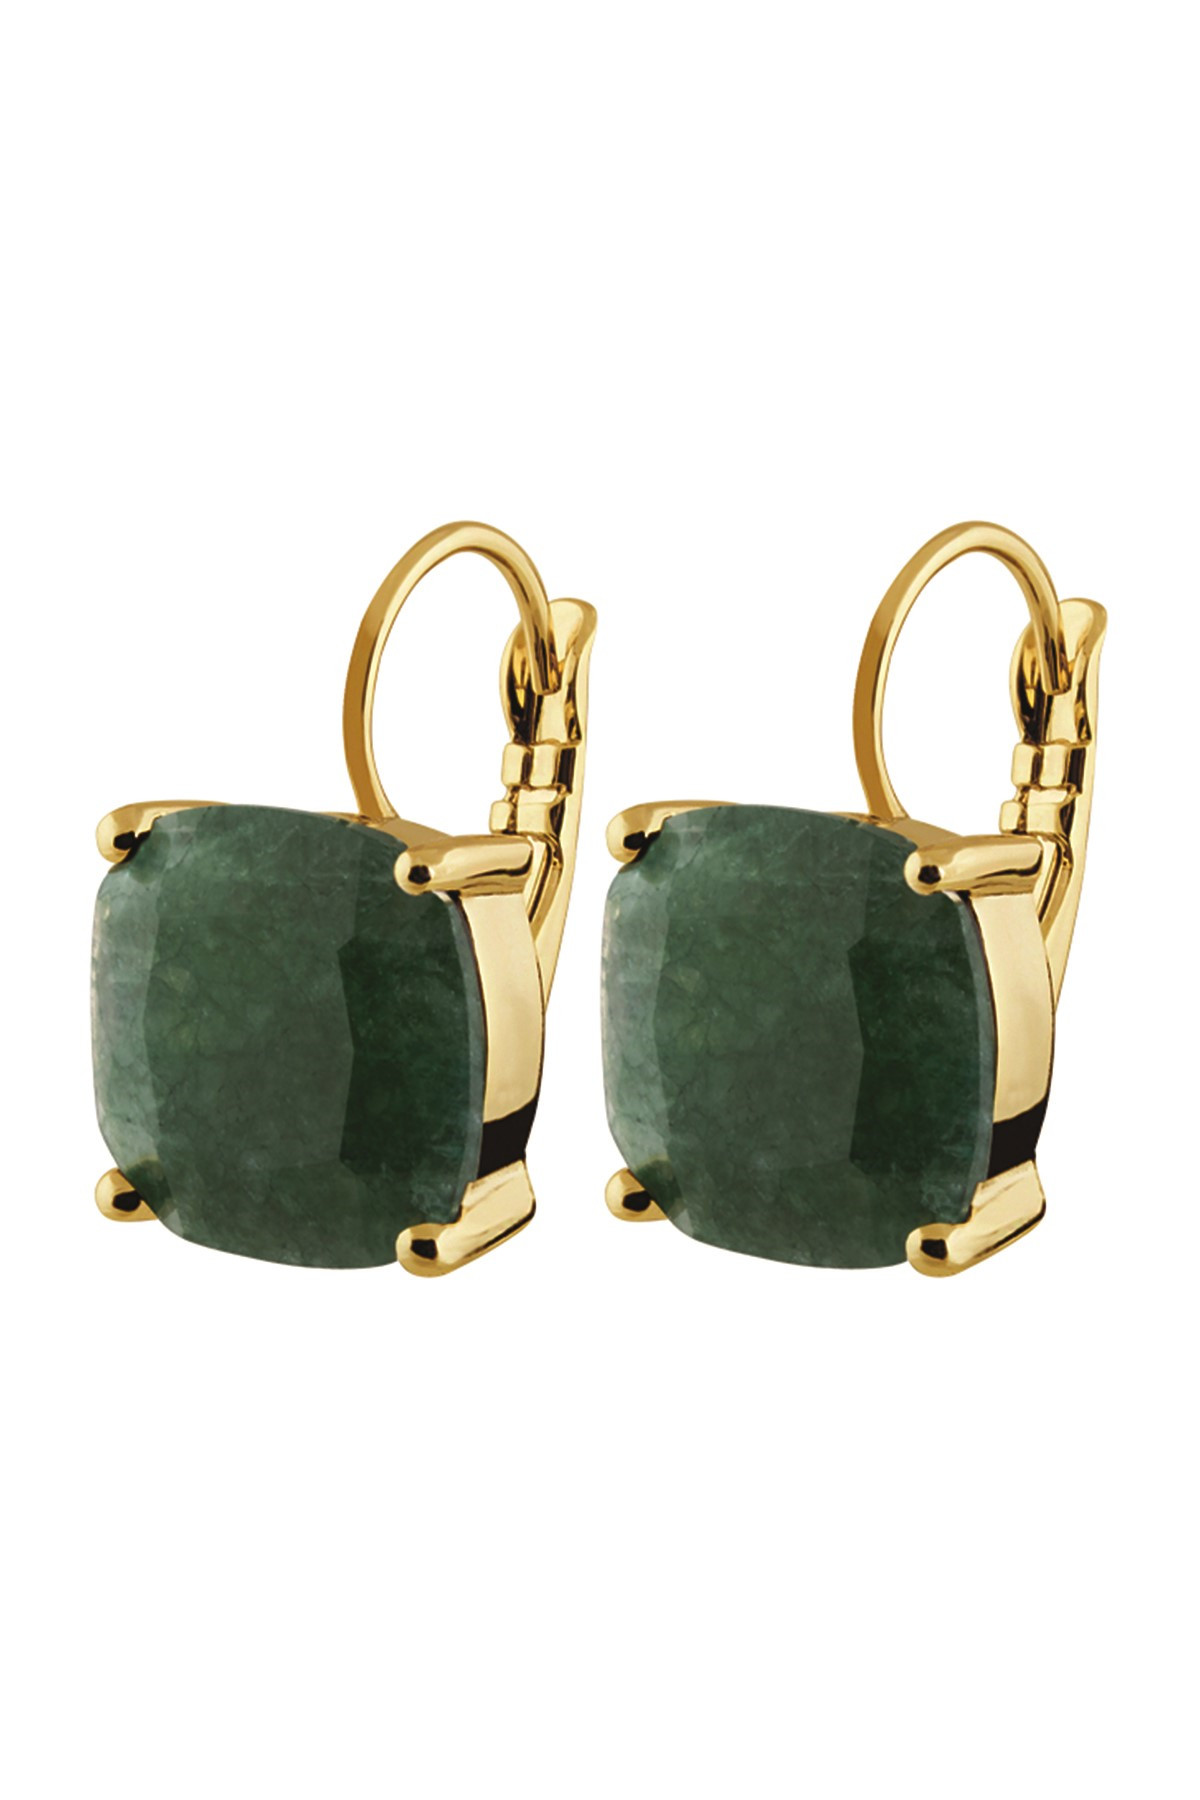 Image of   DYRBERG/KERN AGNETA EARPOST 351661 (Gold, Green, ONESIZE)